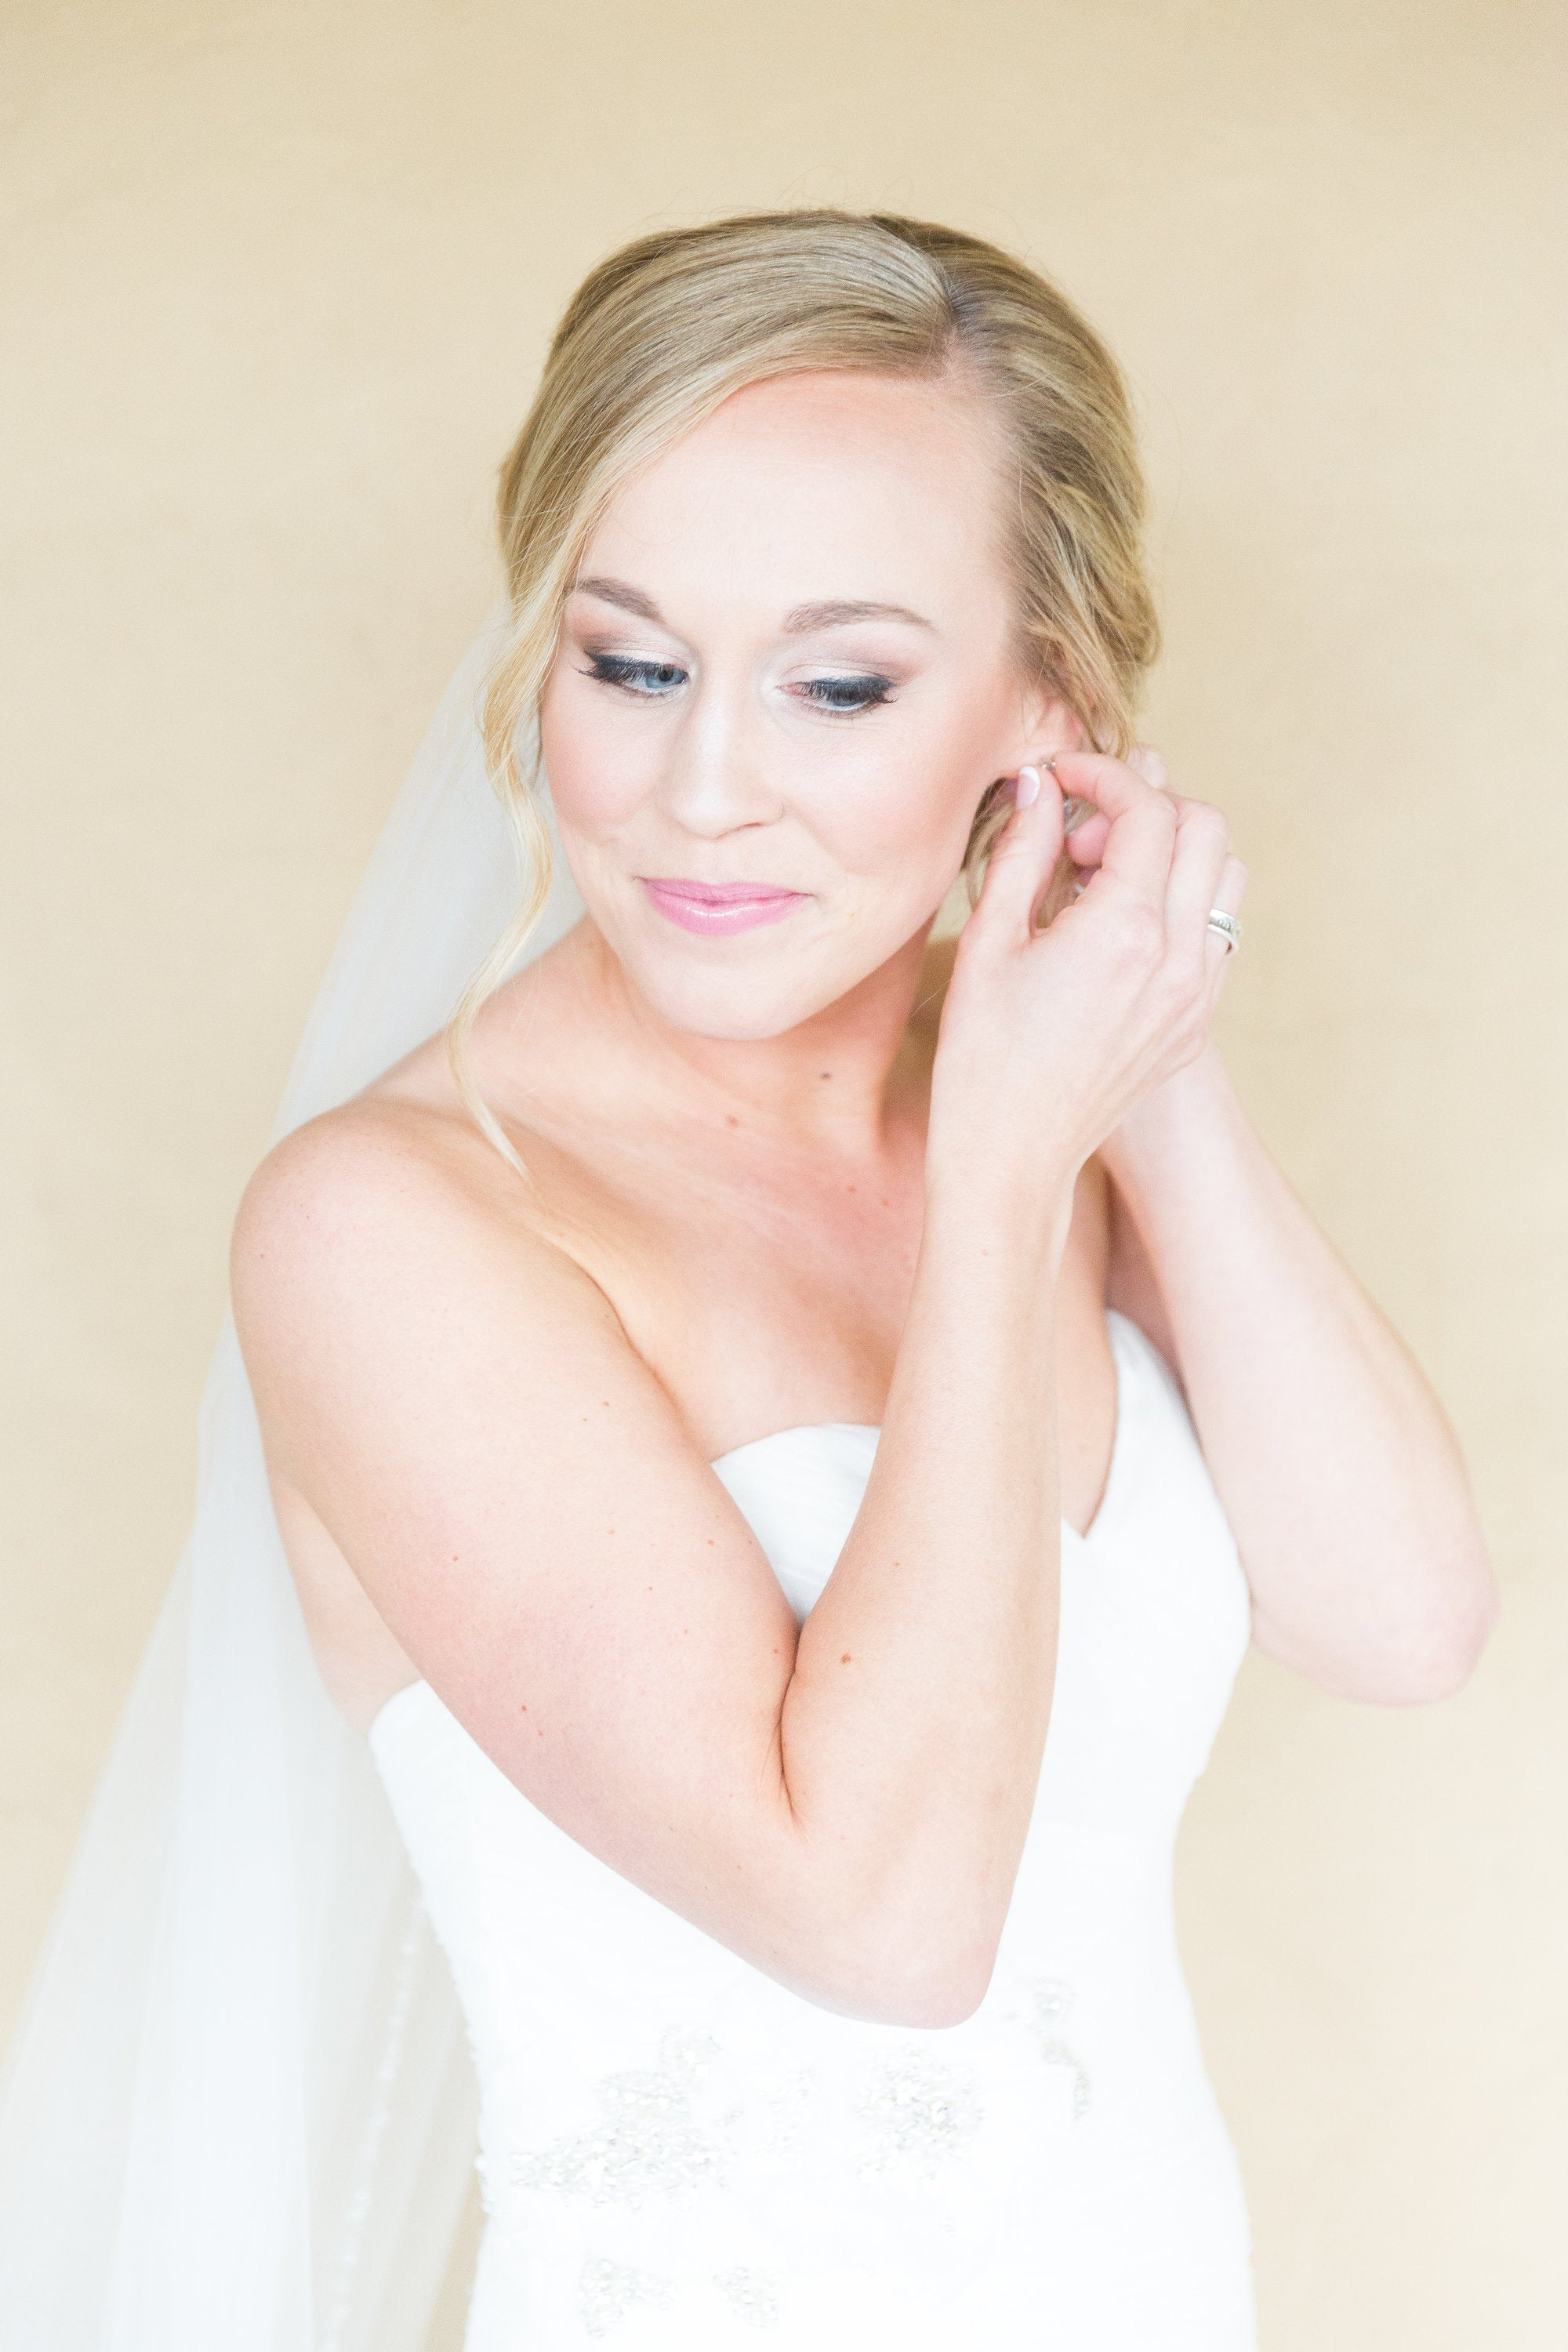 How to get Cost Effective Wedding Ready Skin - SkinFIT Aesthetics LLC